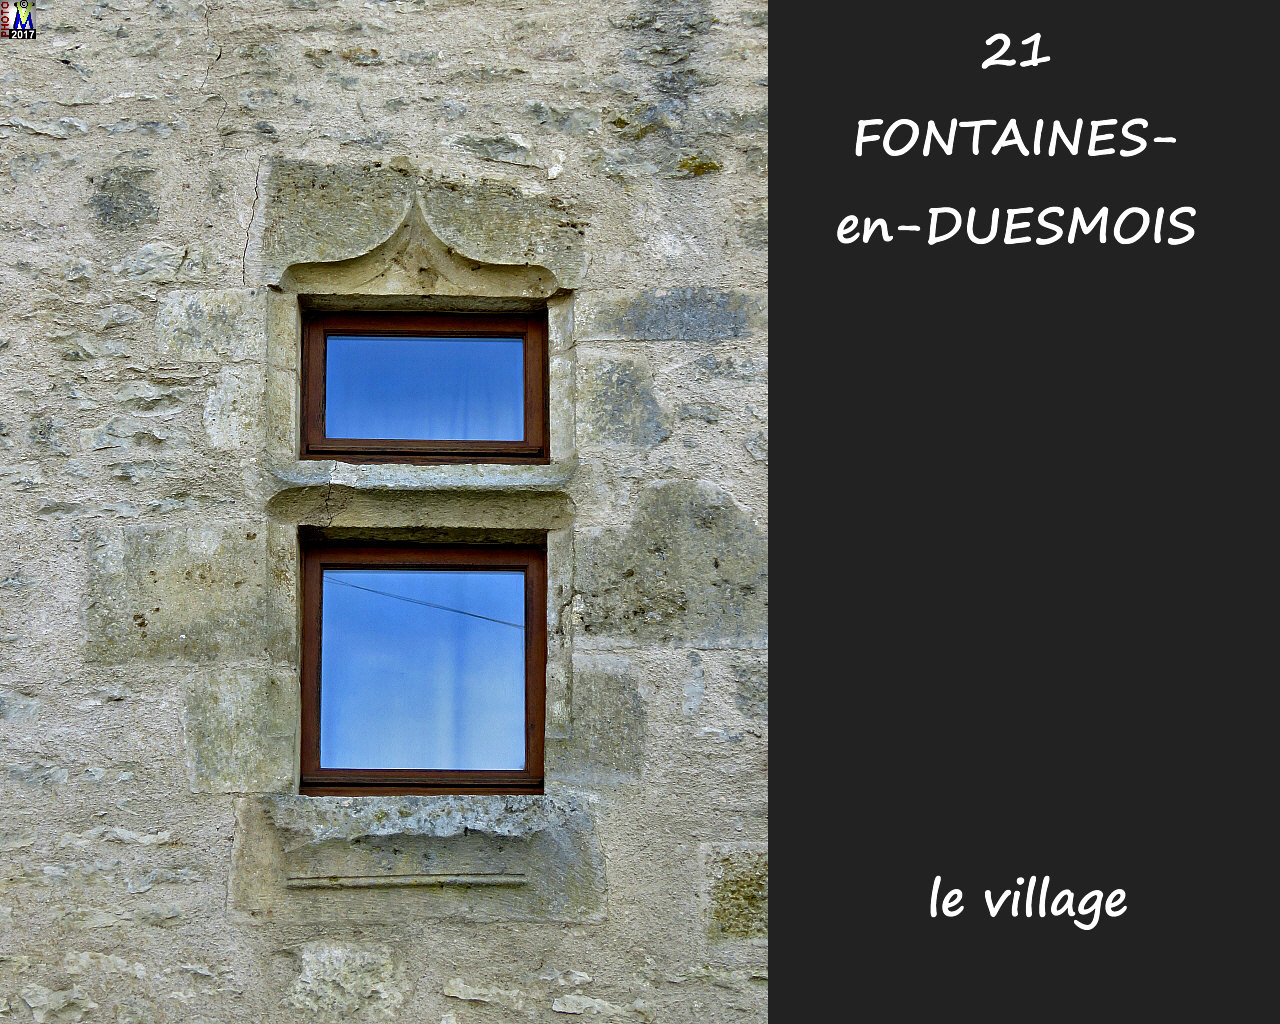 21FONTAINES-DUESMOIS_village_104.jpg